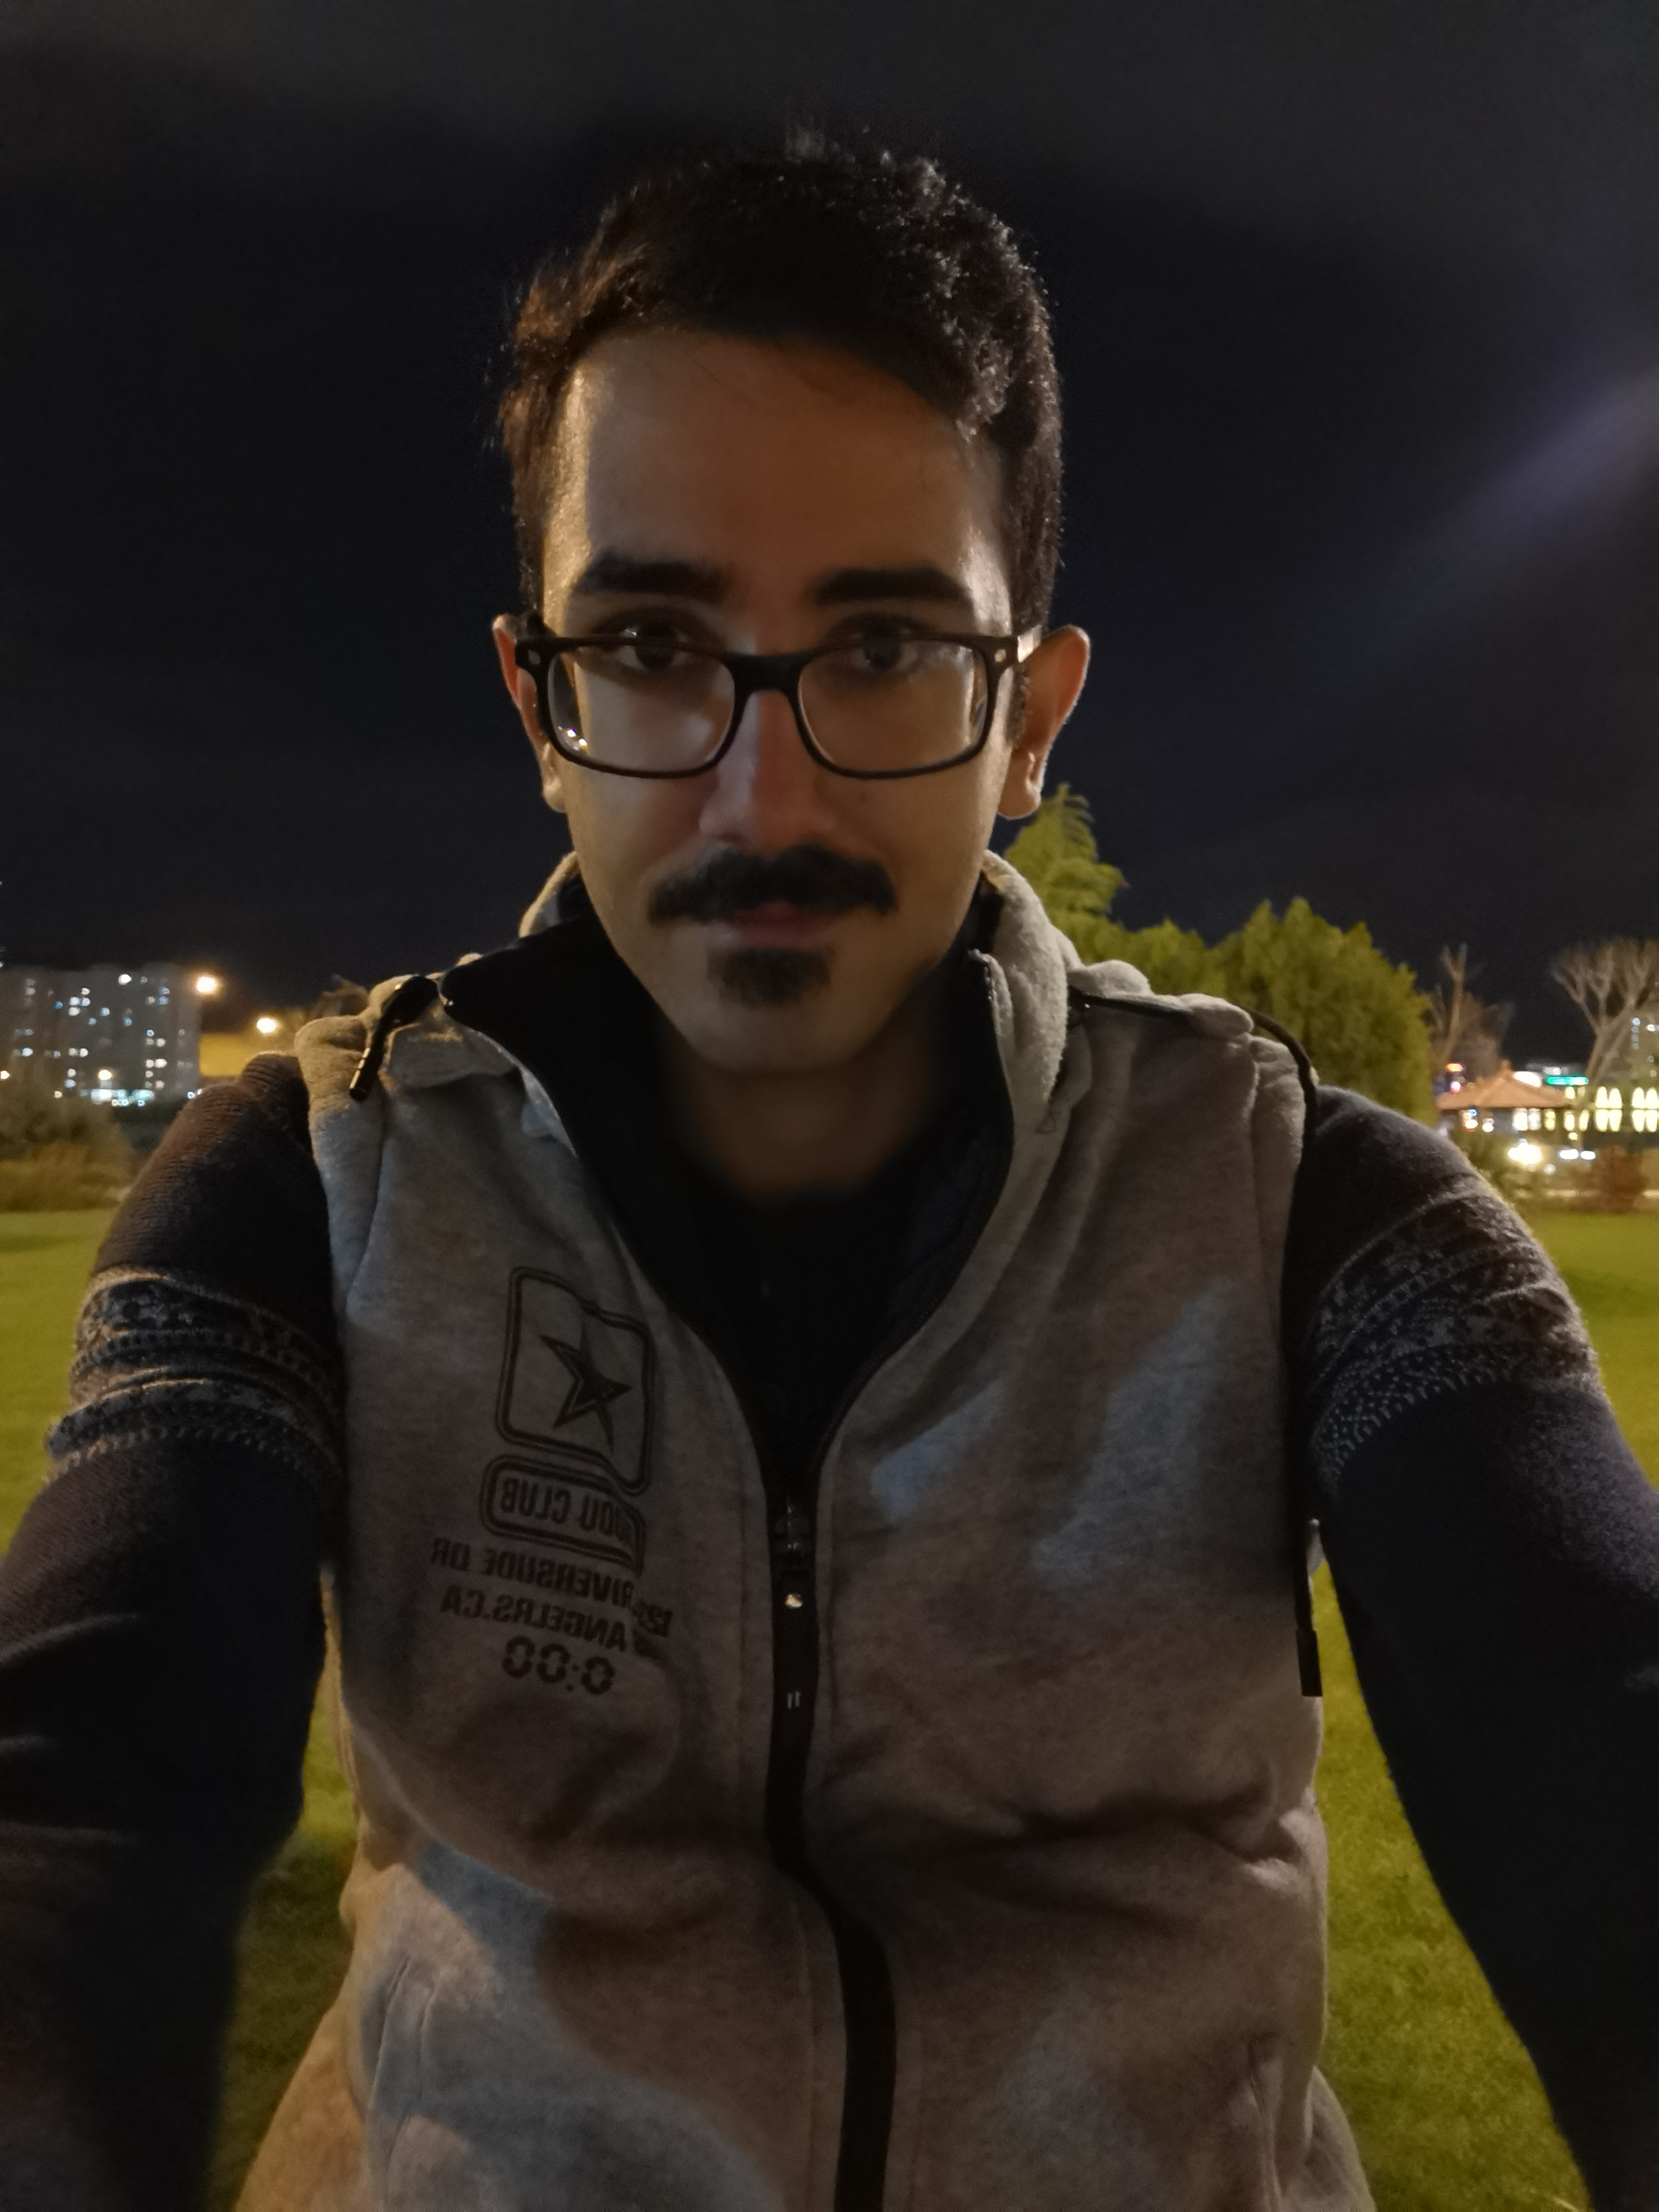 Huawei P30 Pro - Lowlight Selfie - Without Flash